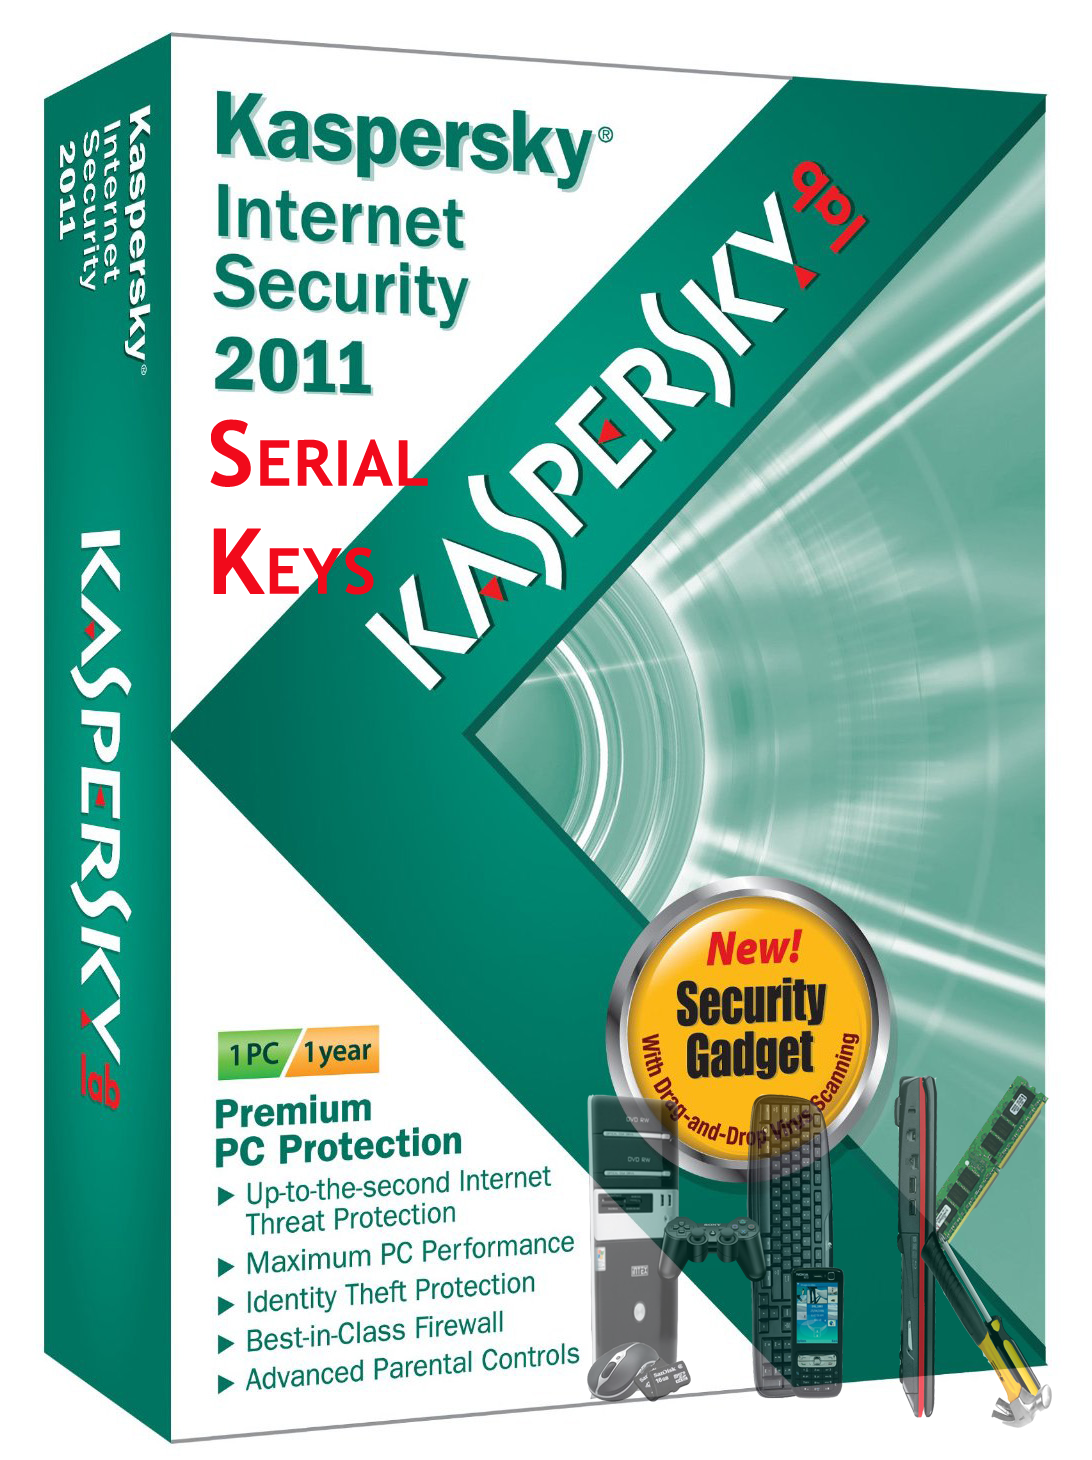 Kaspersky Internet Security 2011 Keys [ANAN]